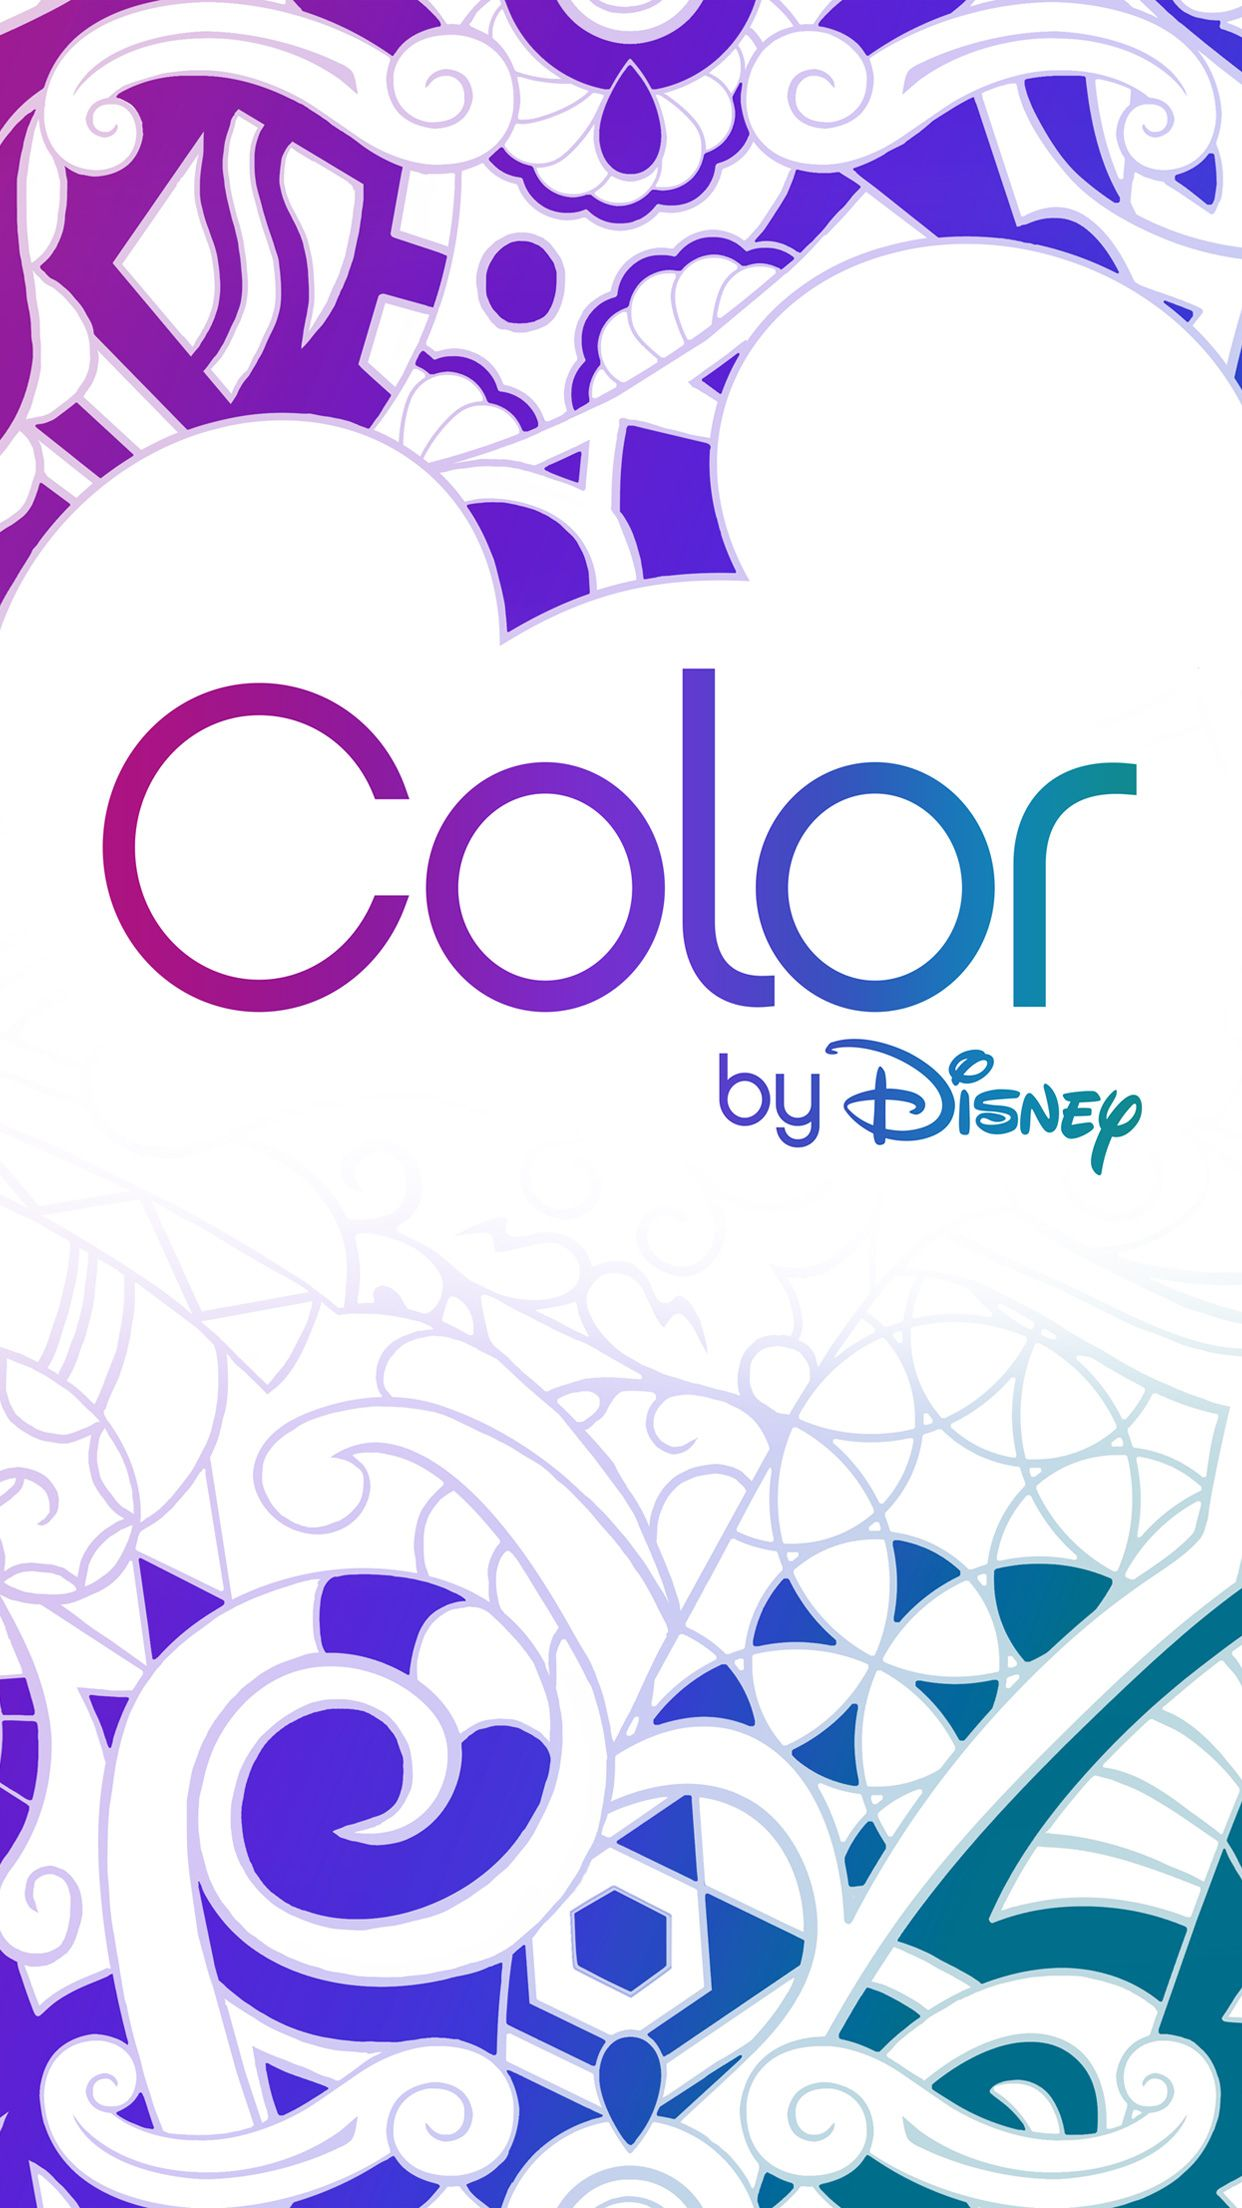 Love To Color The Color By Disney App For Mobile Devices Was Made For You Coloring Books Millie Marotta Coloring Book Vintage Coloring Books